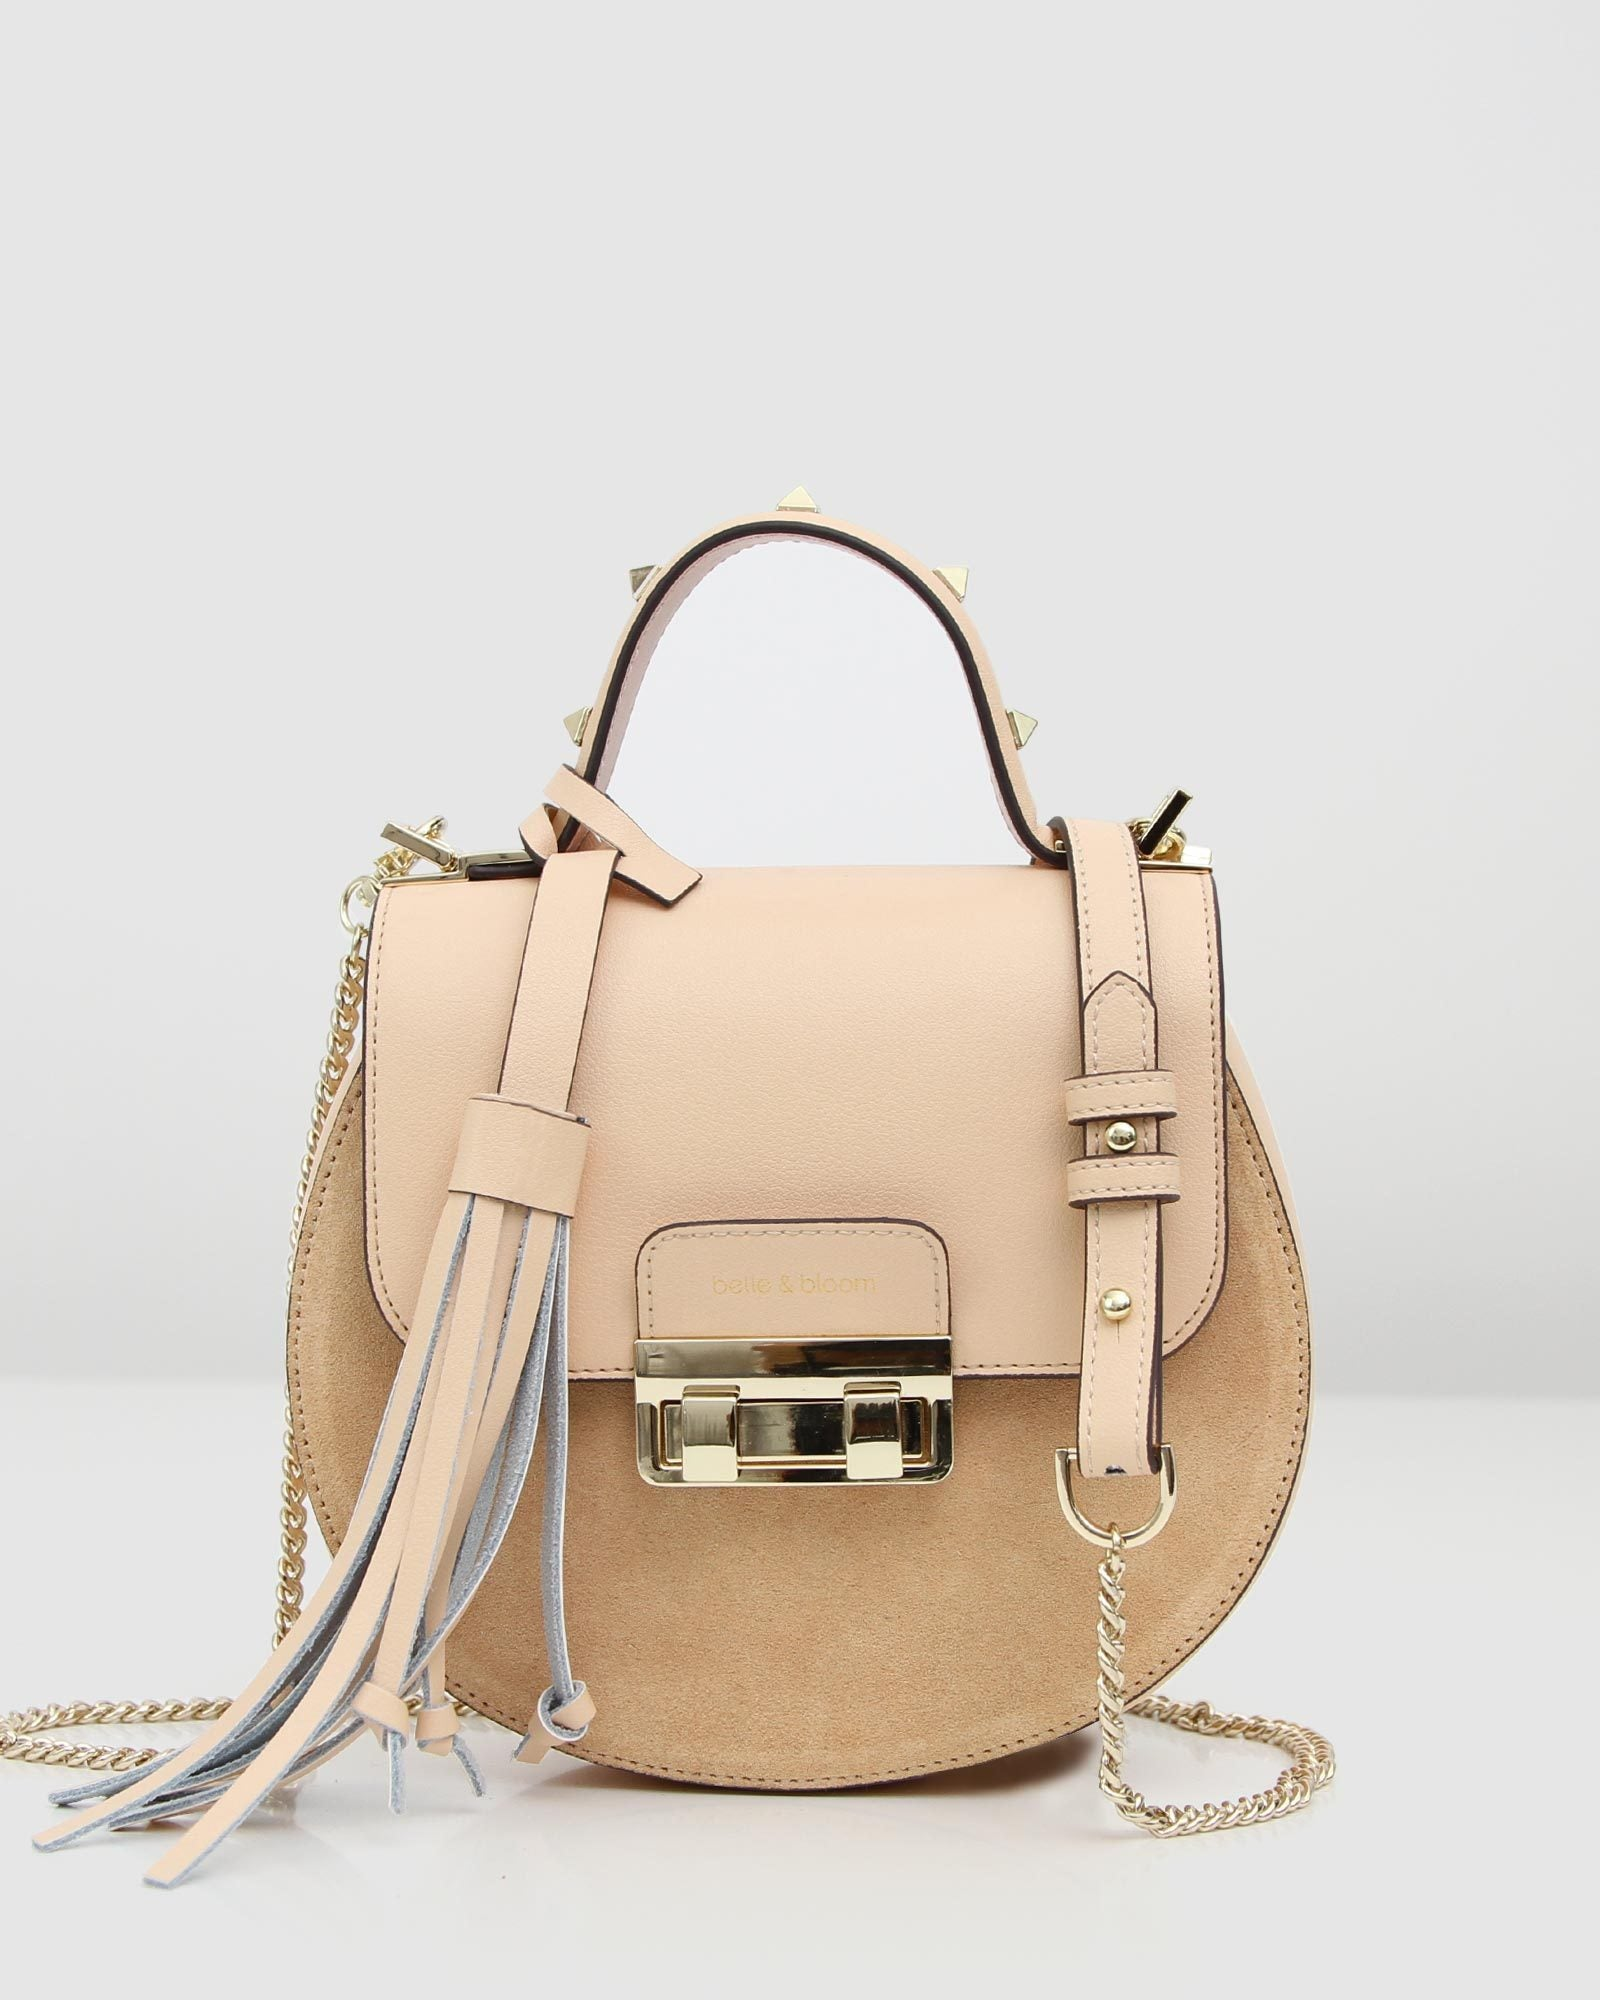 Belmore Exchange Leather Cross-Body - Milk Tea/Sand